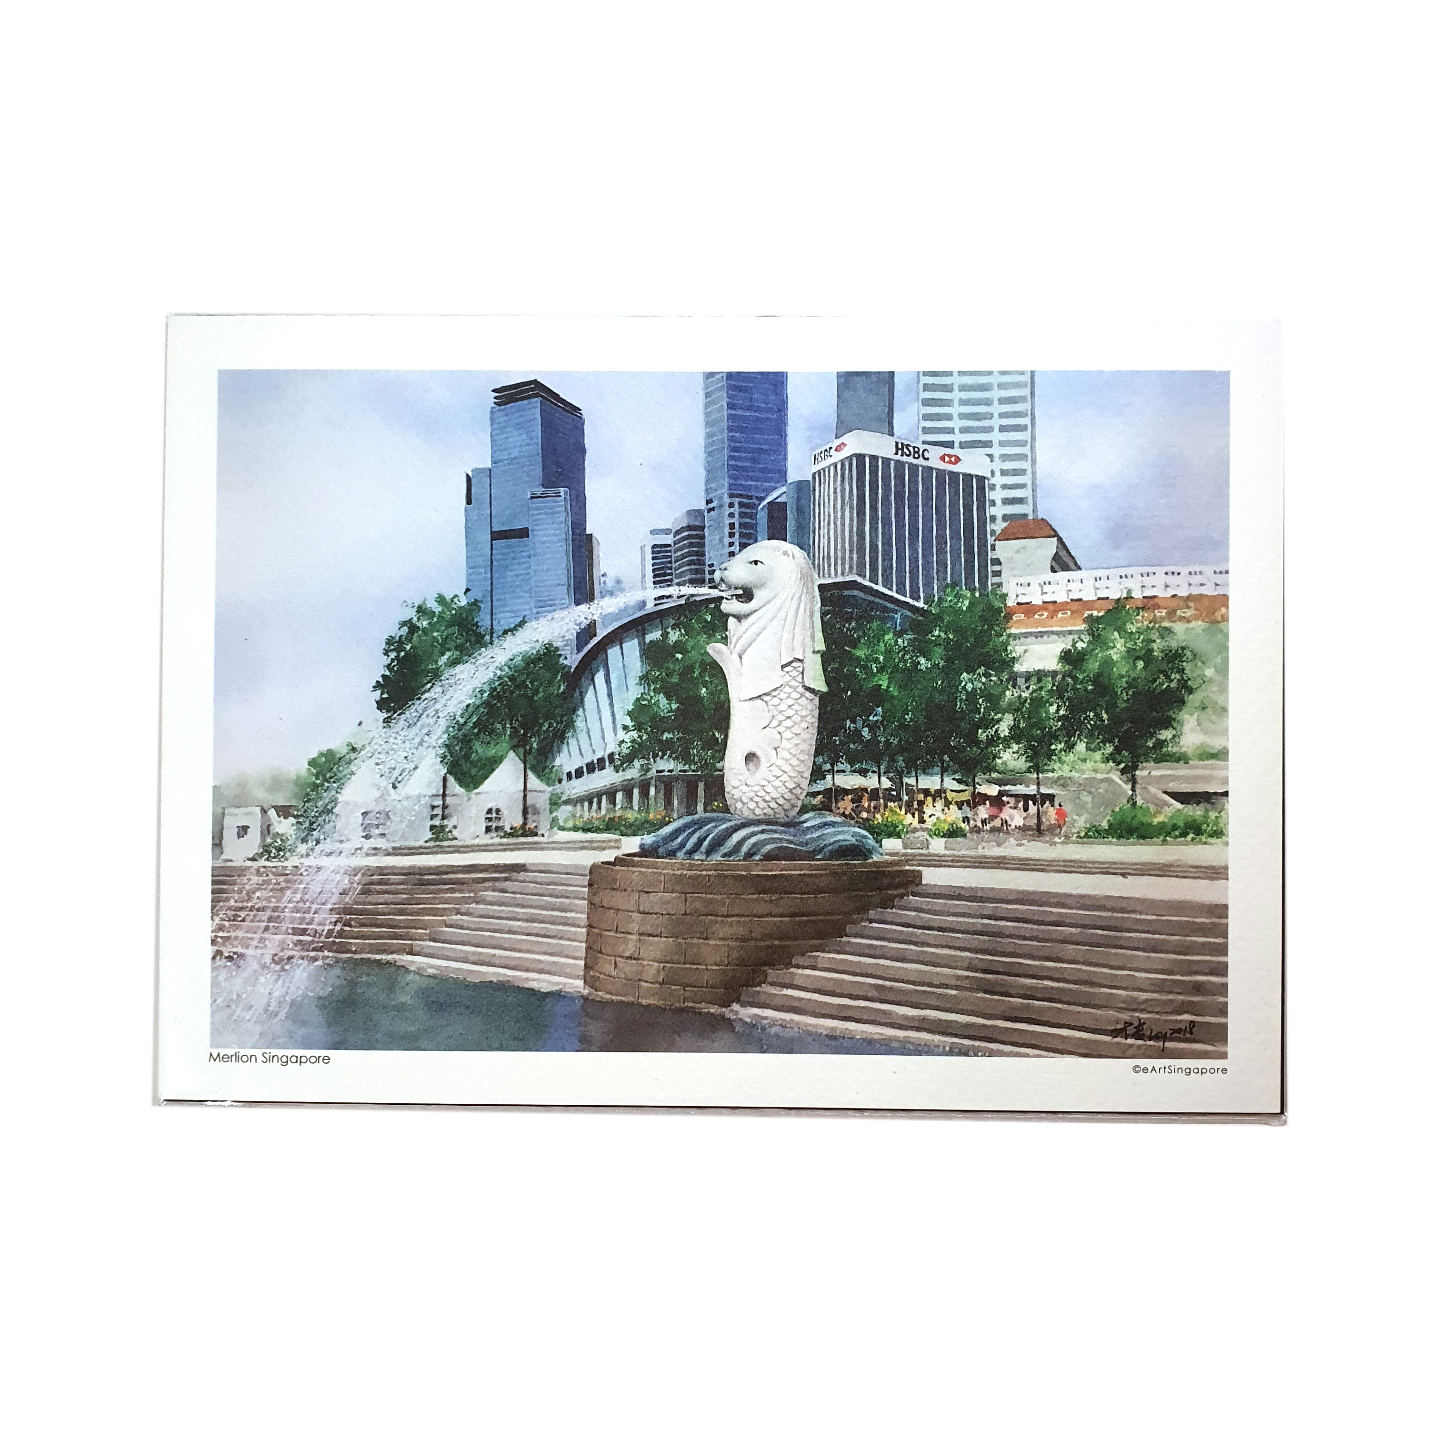 Heritage Watercolour A5 Print: Merlion Singapore by Loy Chye Chuan